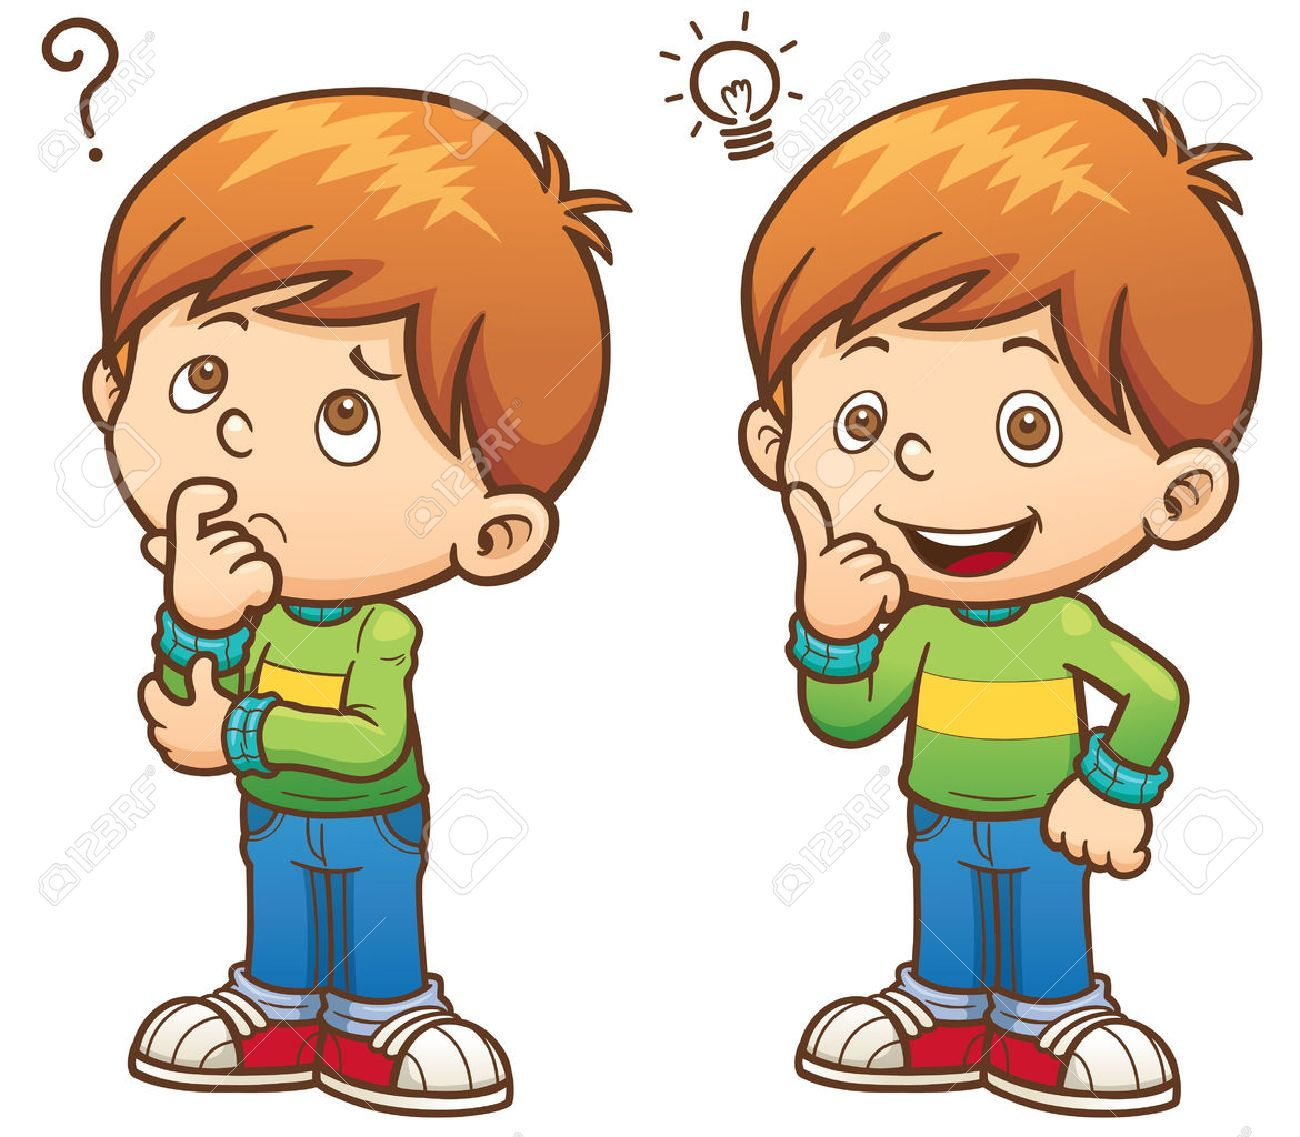 Clipart of boy thinking download A boy thinking clipart 7 » Clipart Portal download